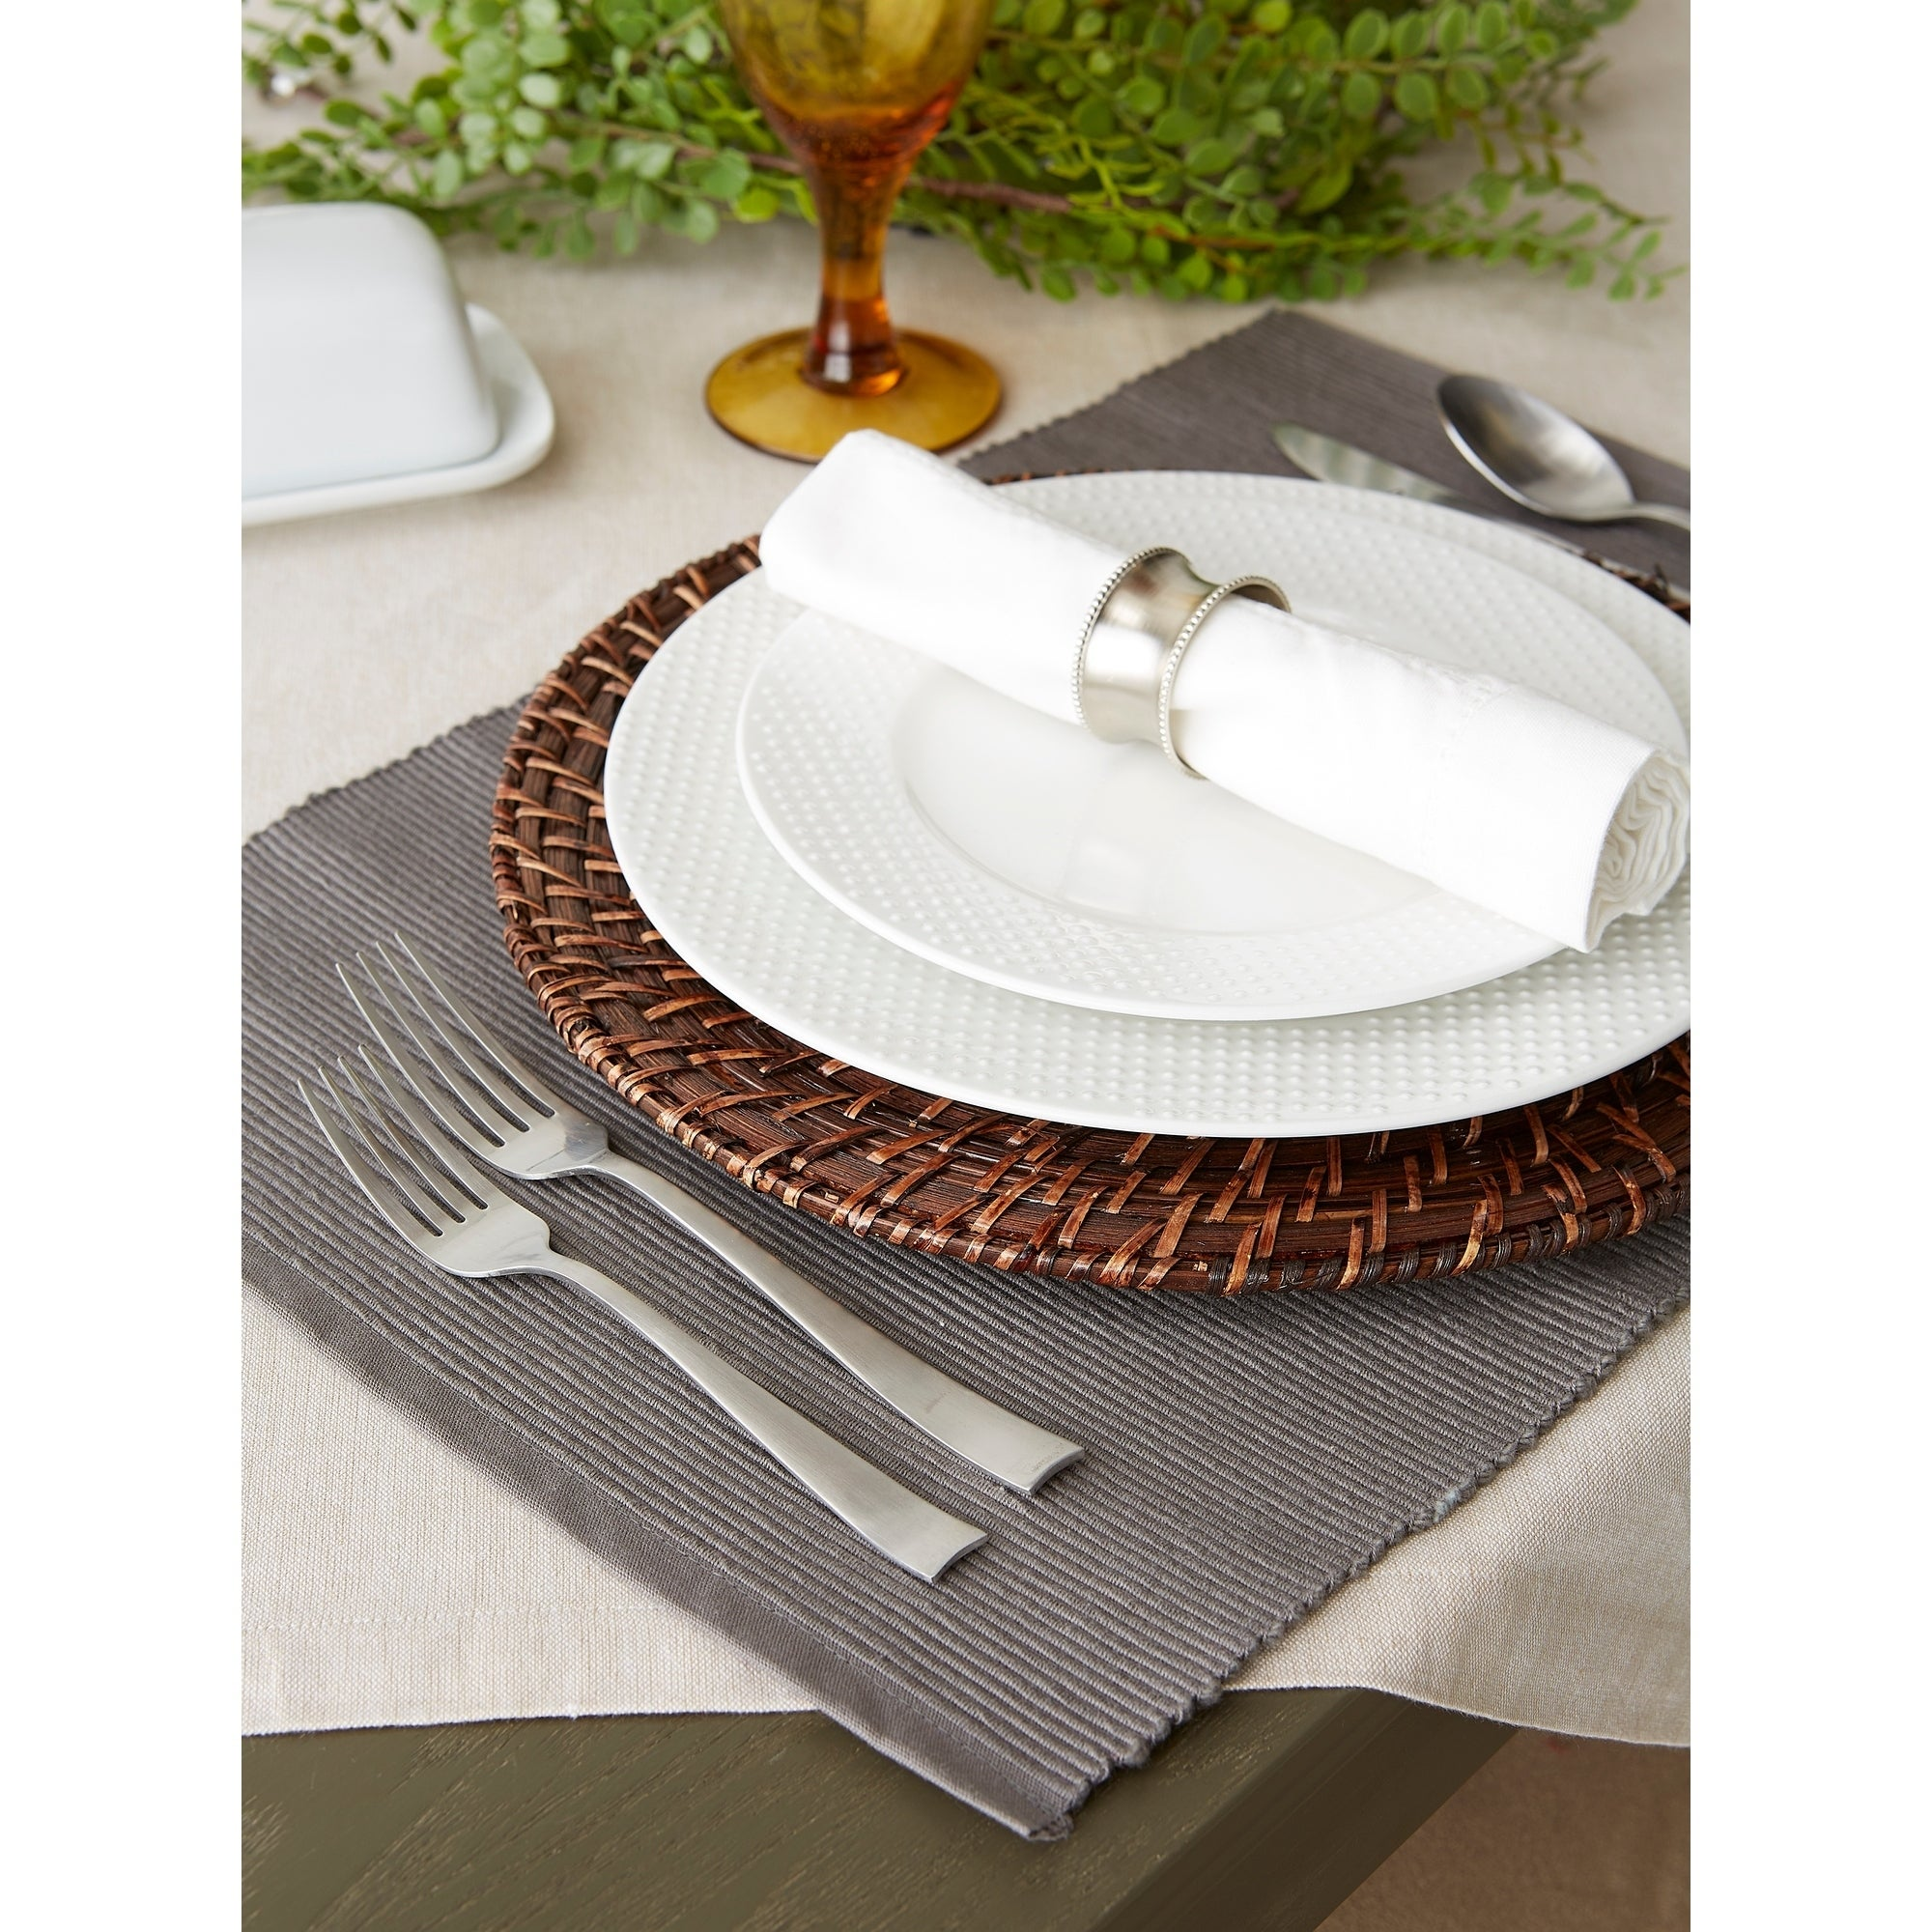 Shop For Design Imports Ribbed Kitchen Placemat Set Set Of 6 Get Free Delivery On Everything At Overstock Your Online Kitchen Dining Store Get 5 In Rewards With Club O 21214980